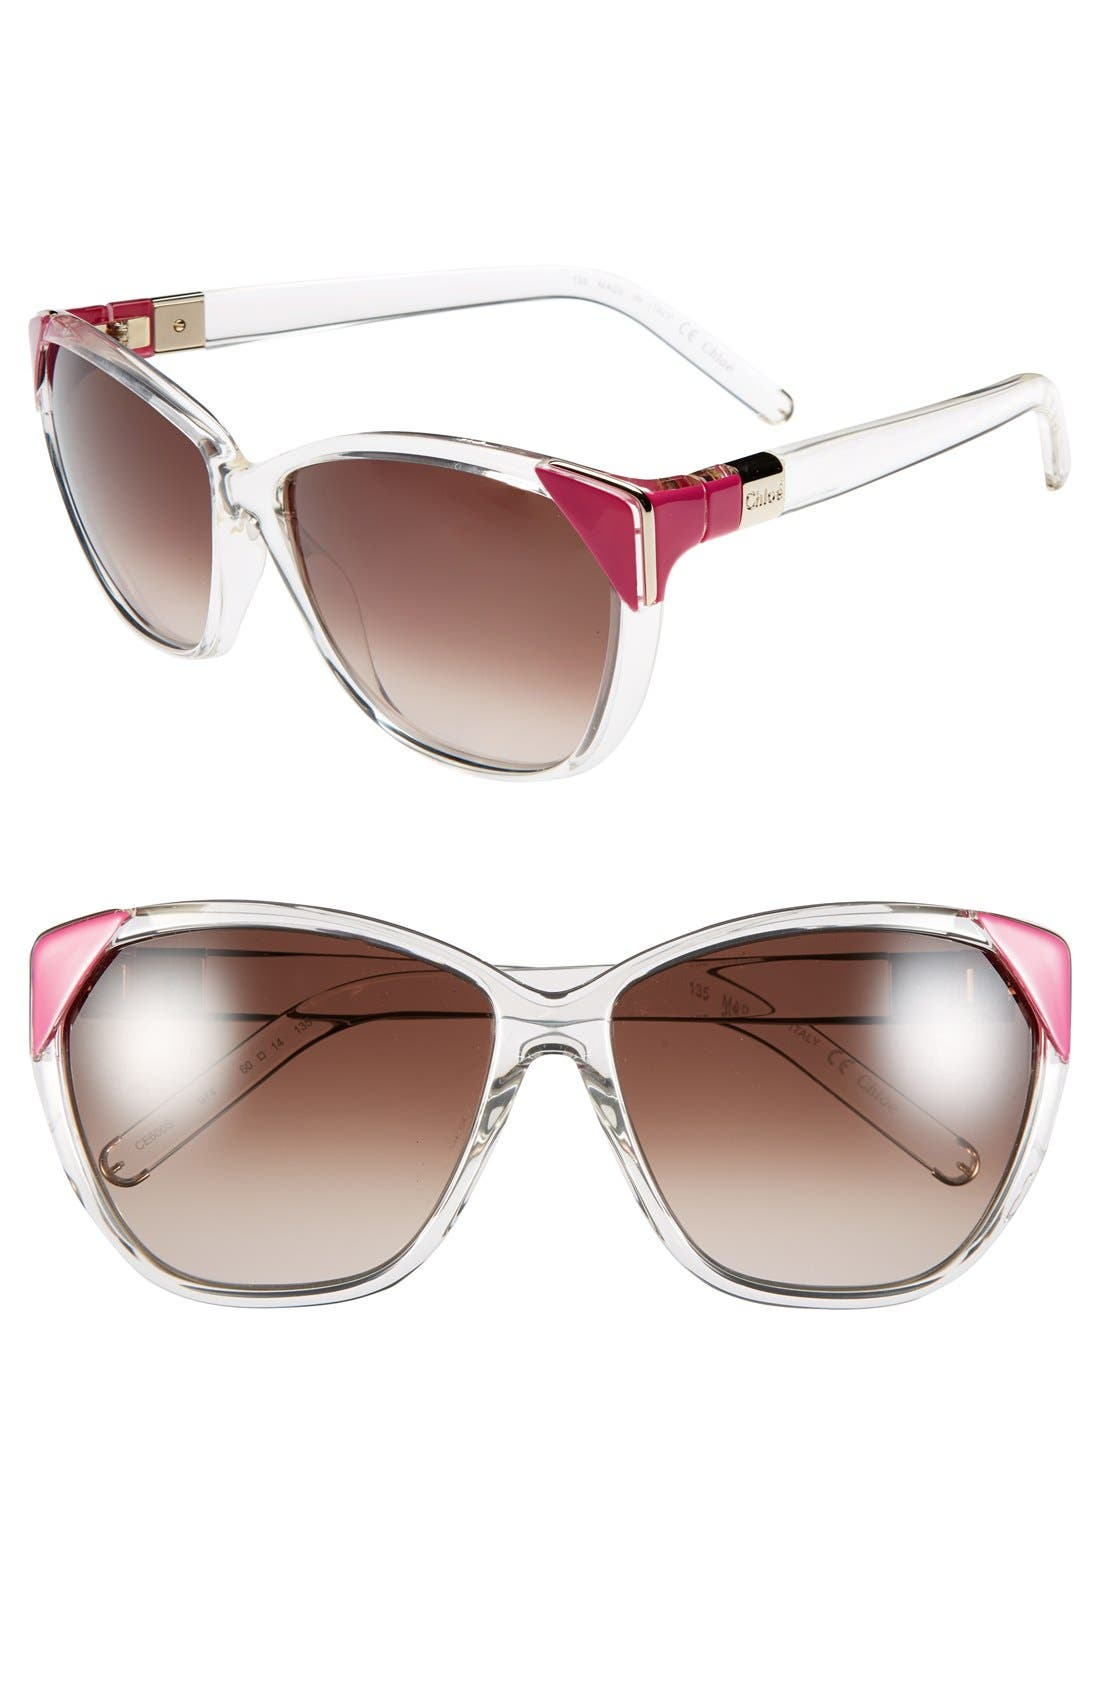 Main Image - Chloé 60mm Retro Sunglasses